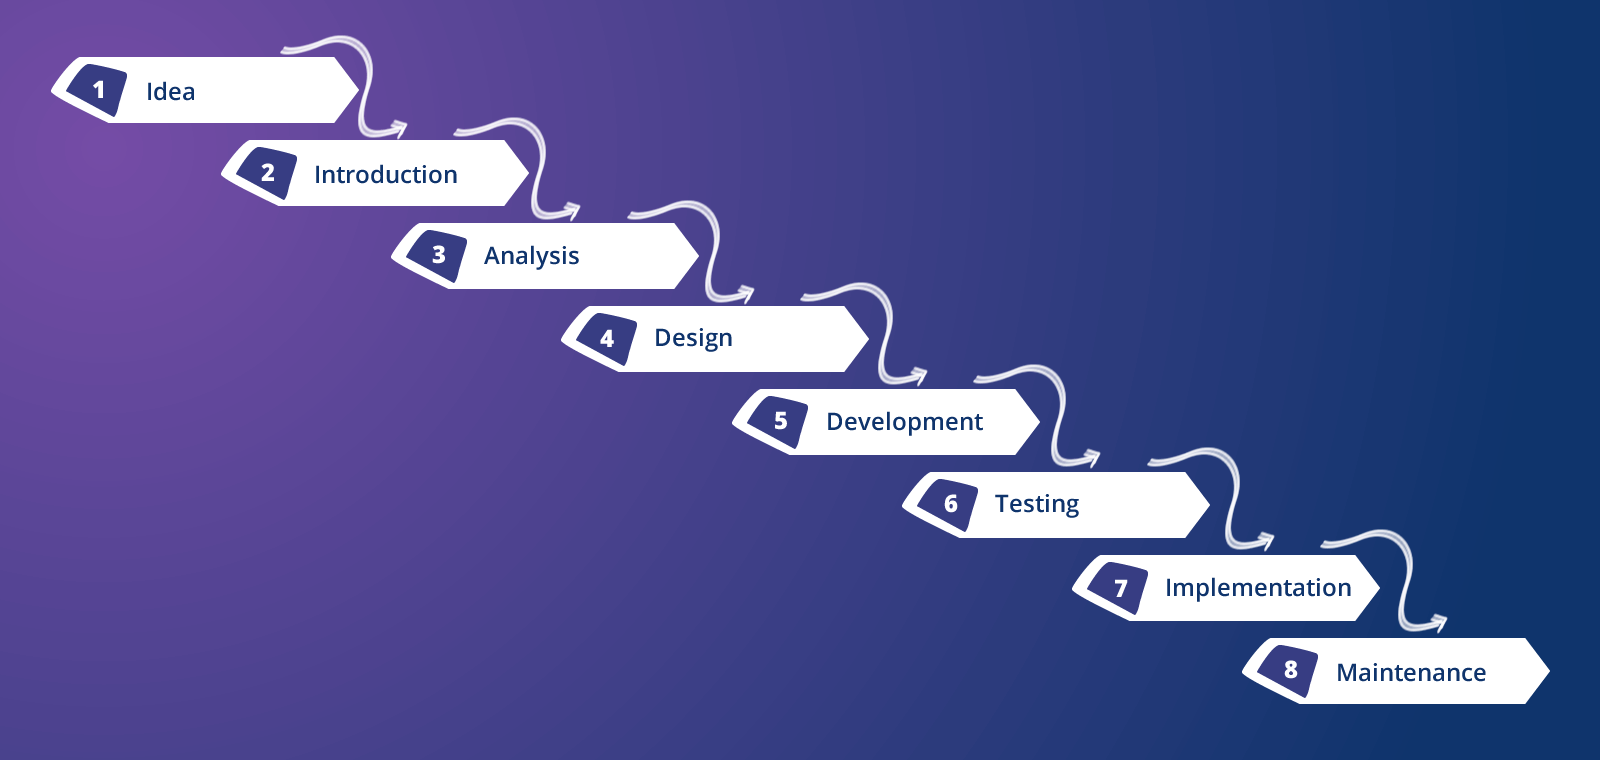 Waterfall software development methodology